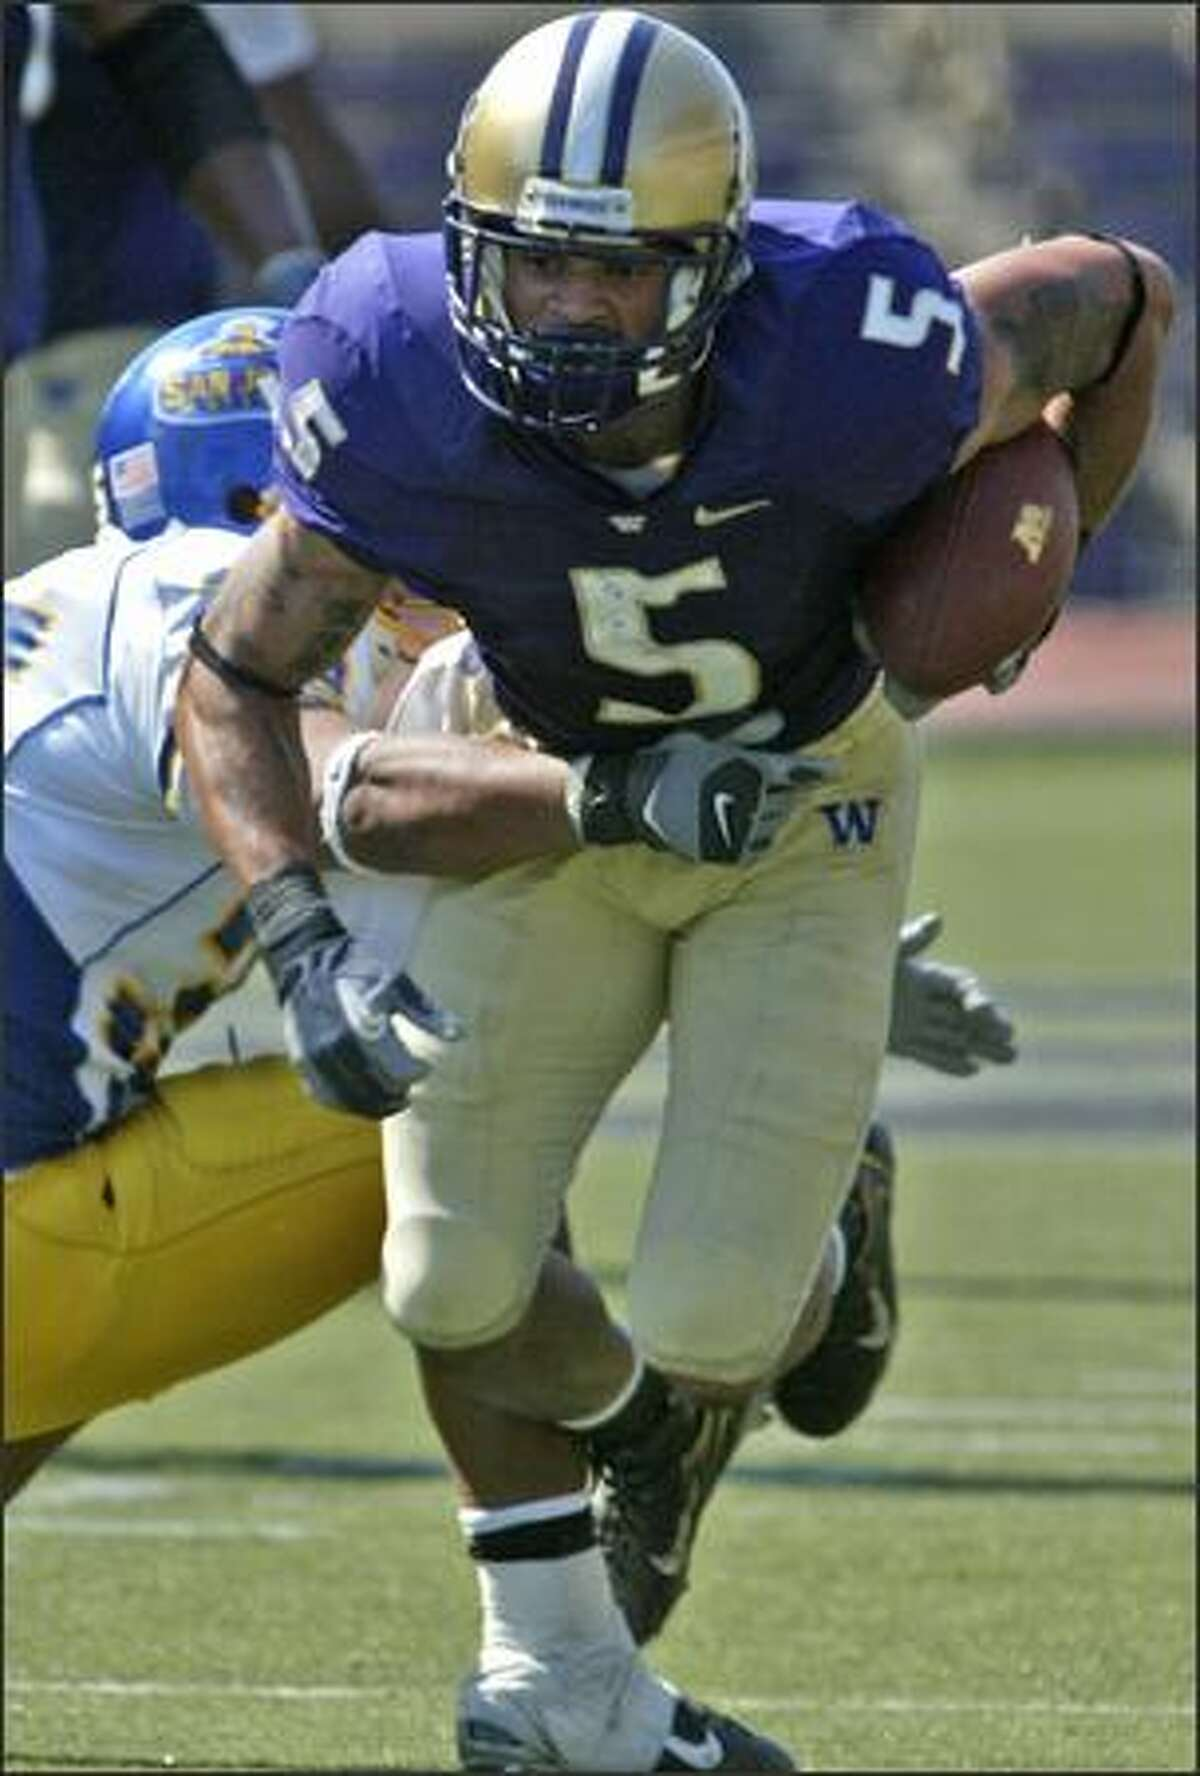 UW's Anthony Russo (5) runs for three yards with Spartans Matt Castelo reaching for him late in third quarter.